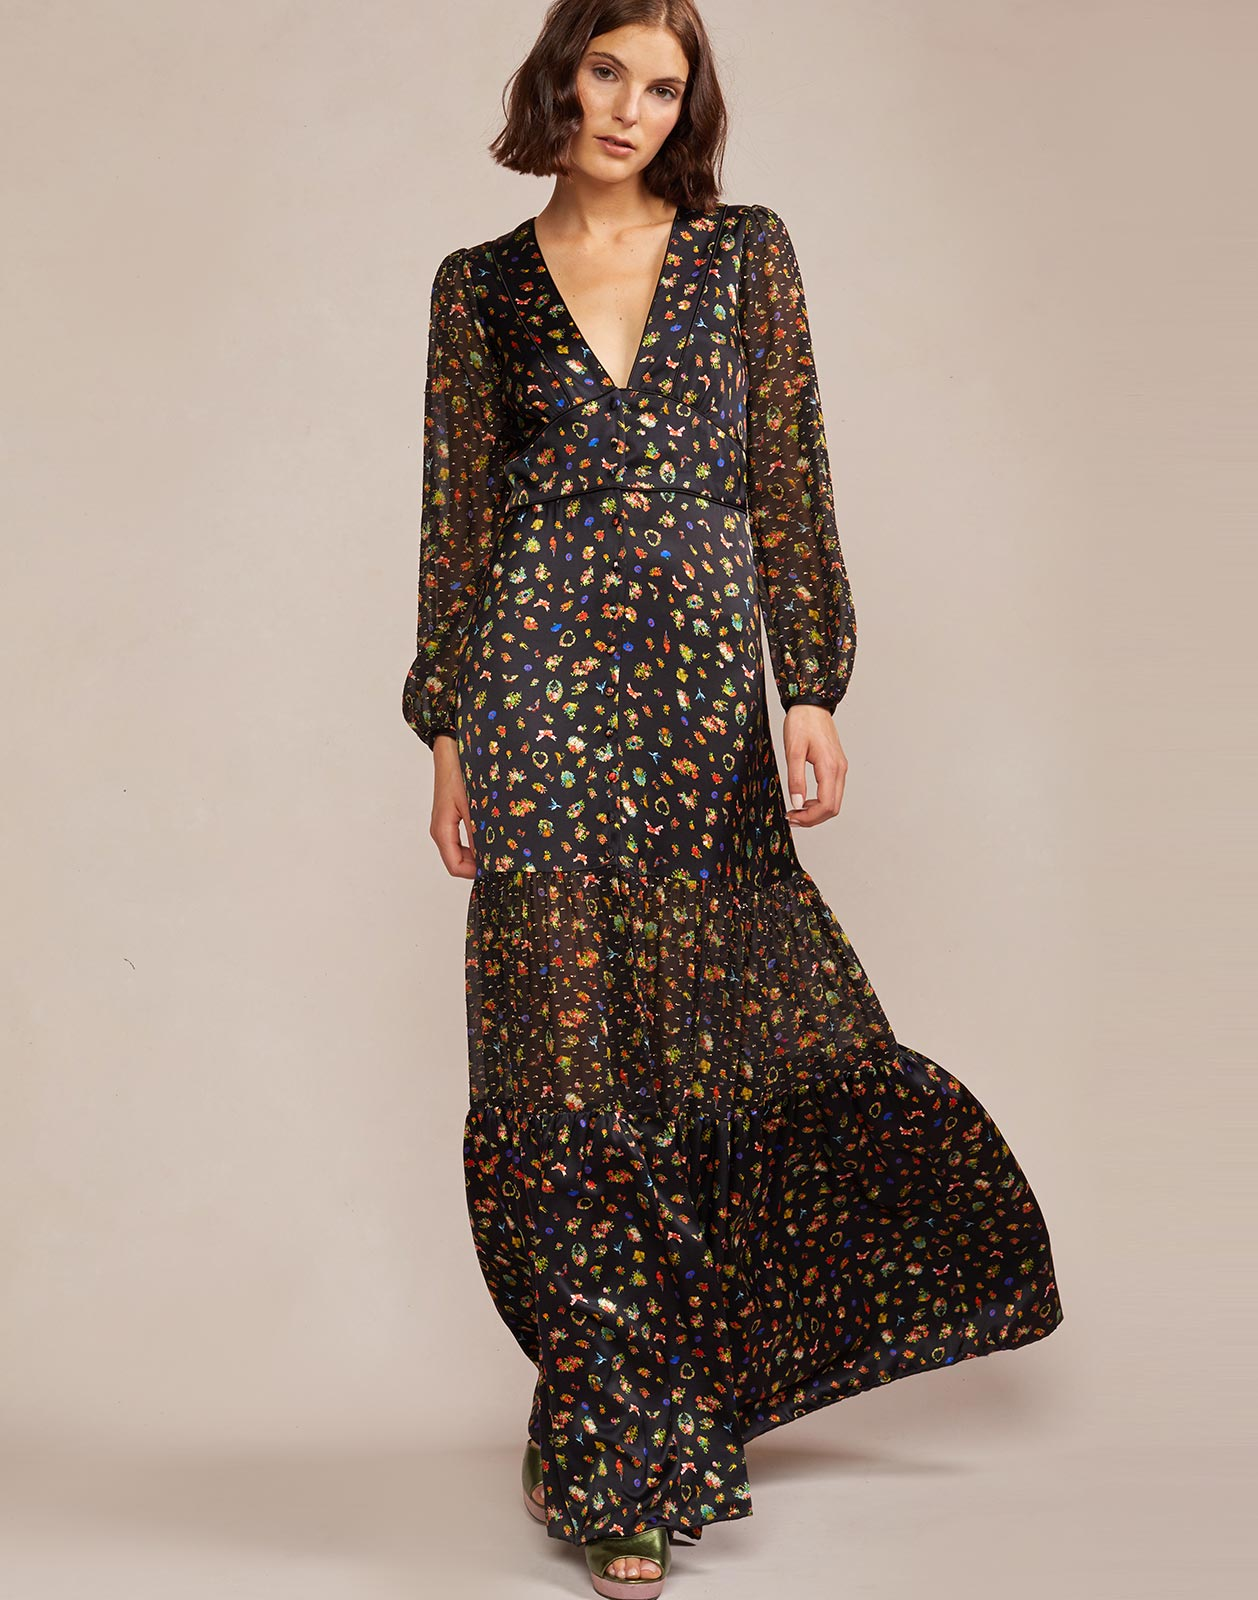 Alternate view of silk maxi dress with long sheer sleeves